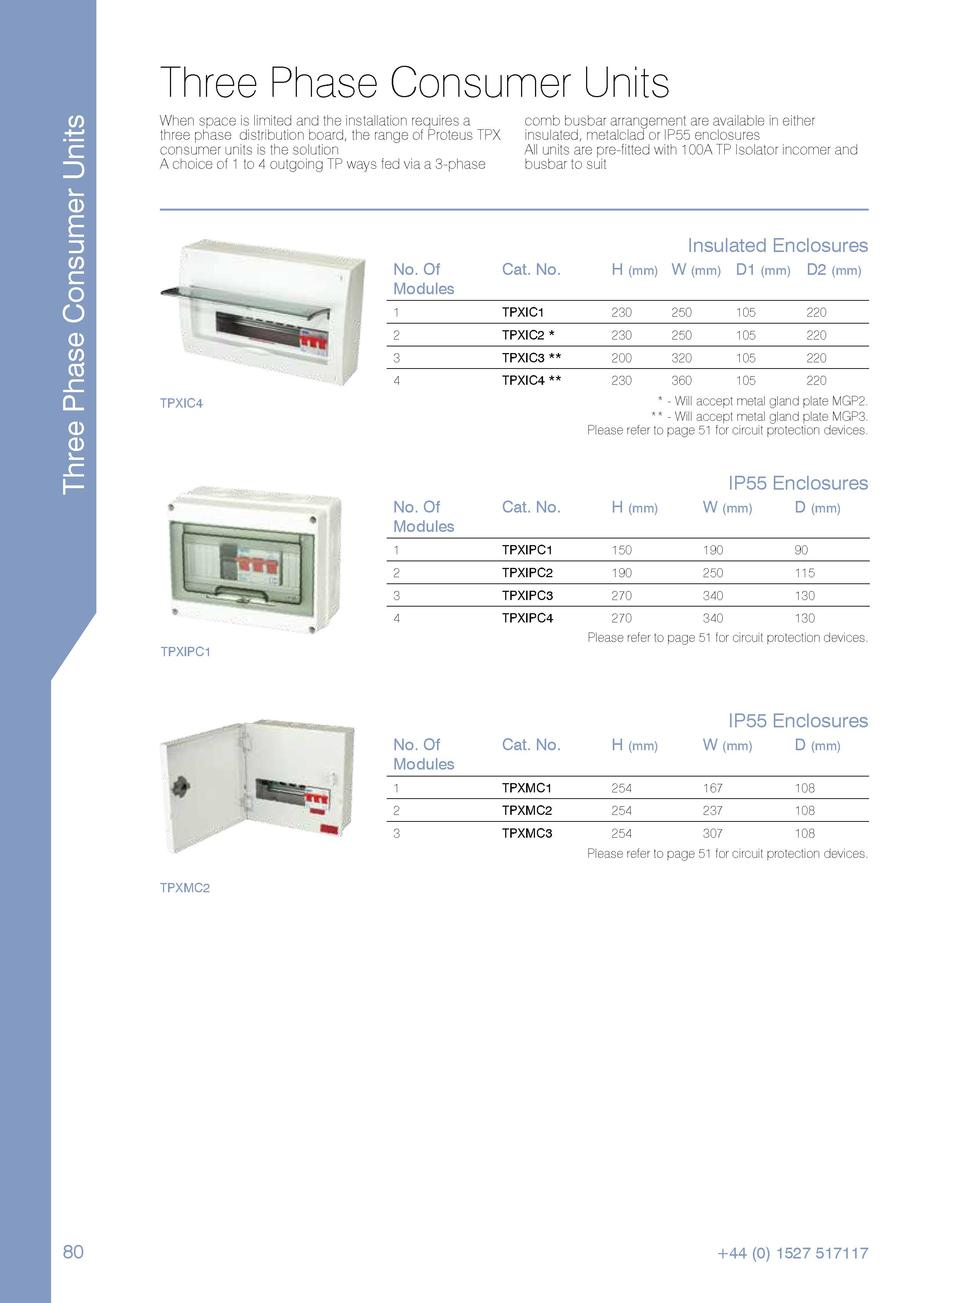 Three Phase Consumer Units  Three Phase Consumer Units When space is limited and the installation requires a three phase d...